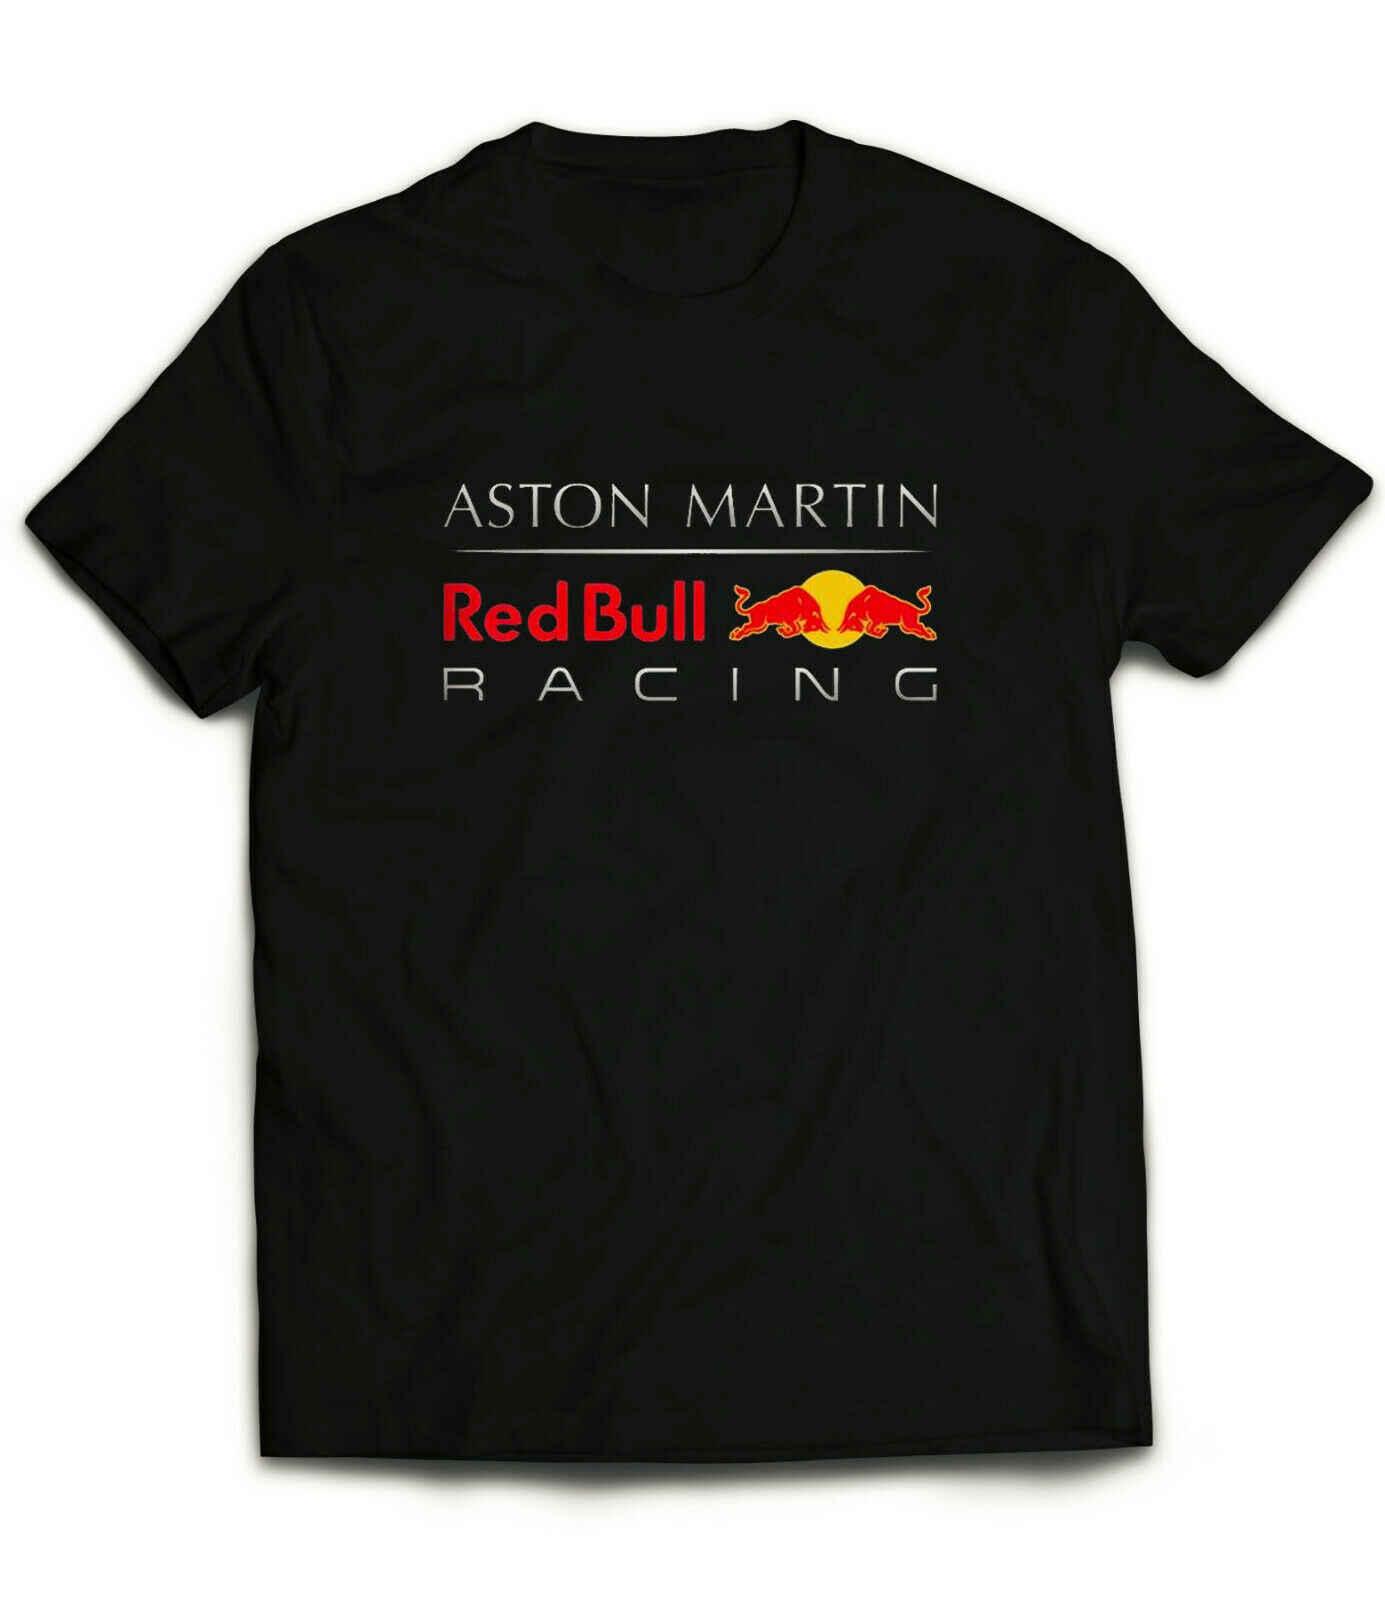 Aston Martin Racing Bull T-Shirt Inspired F1 Team Tee Streetwear Size S-3Xl